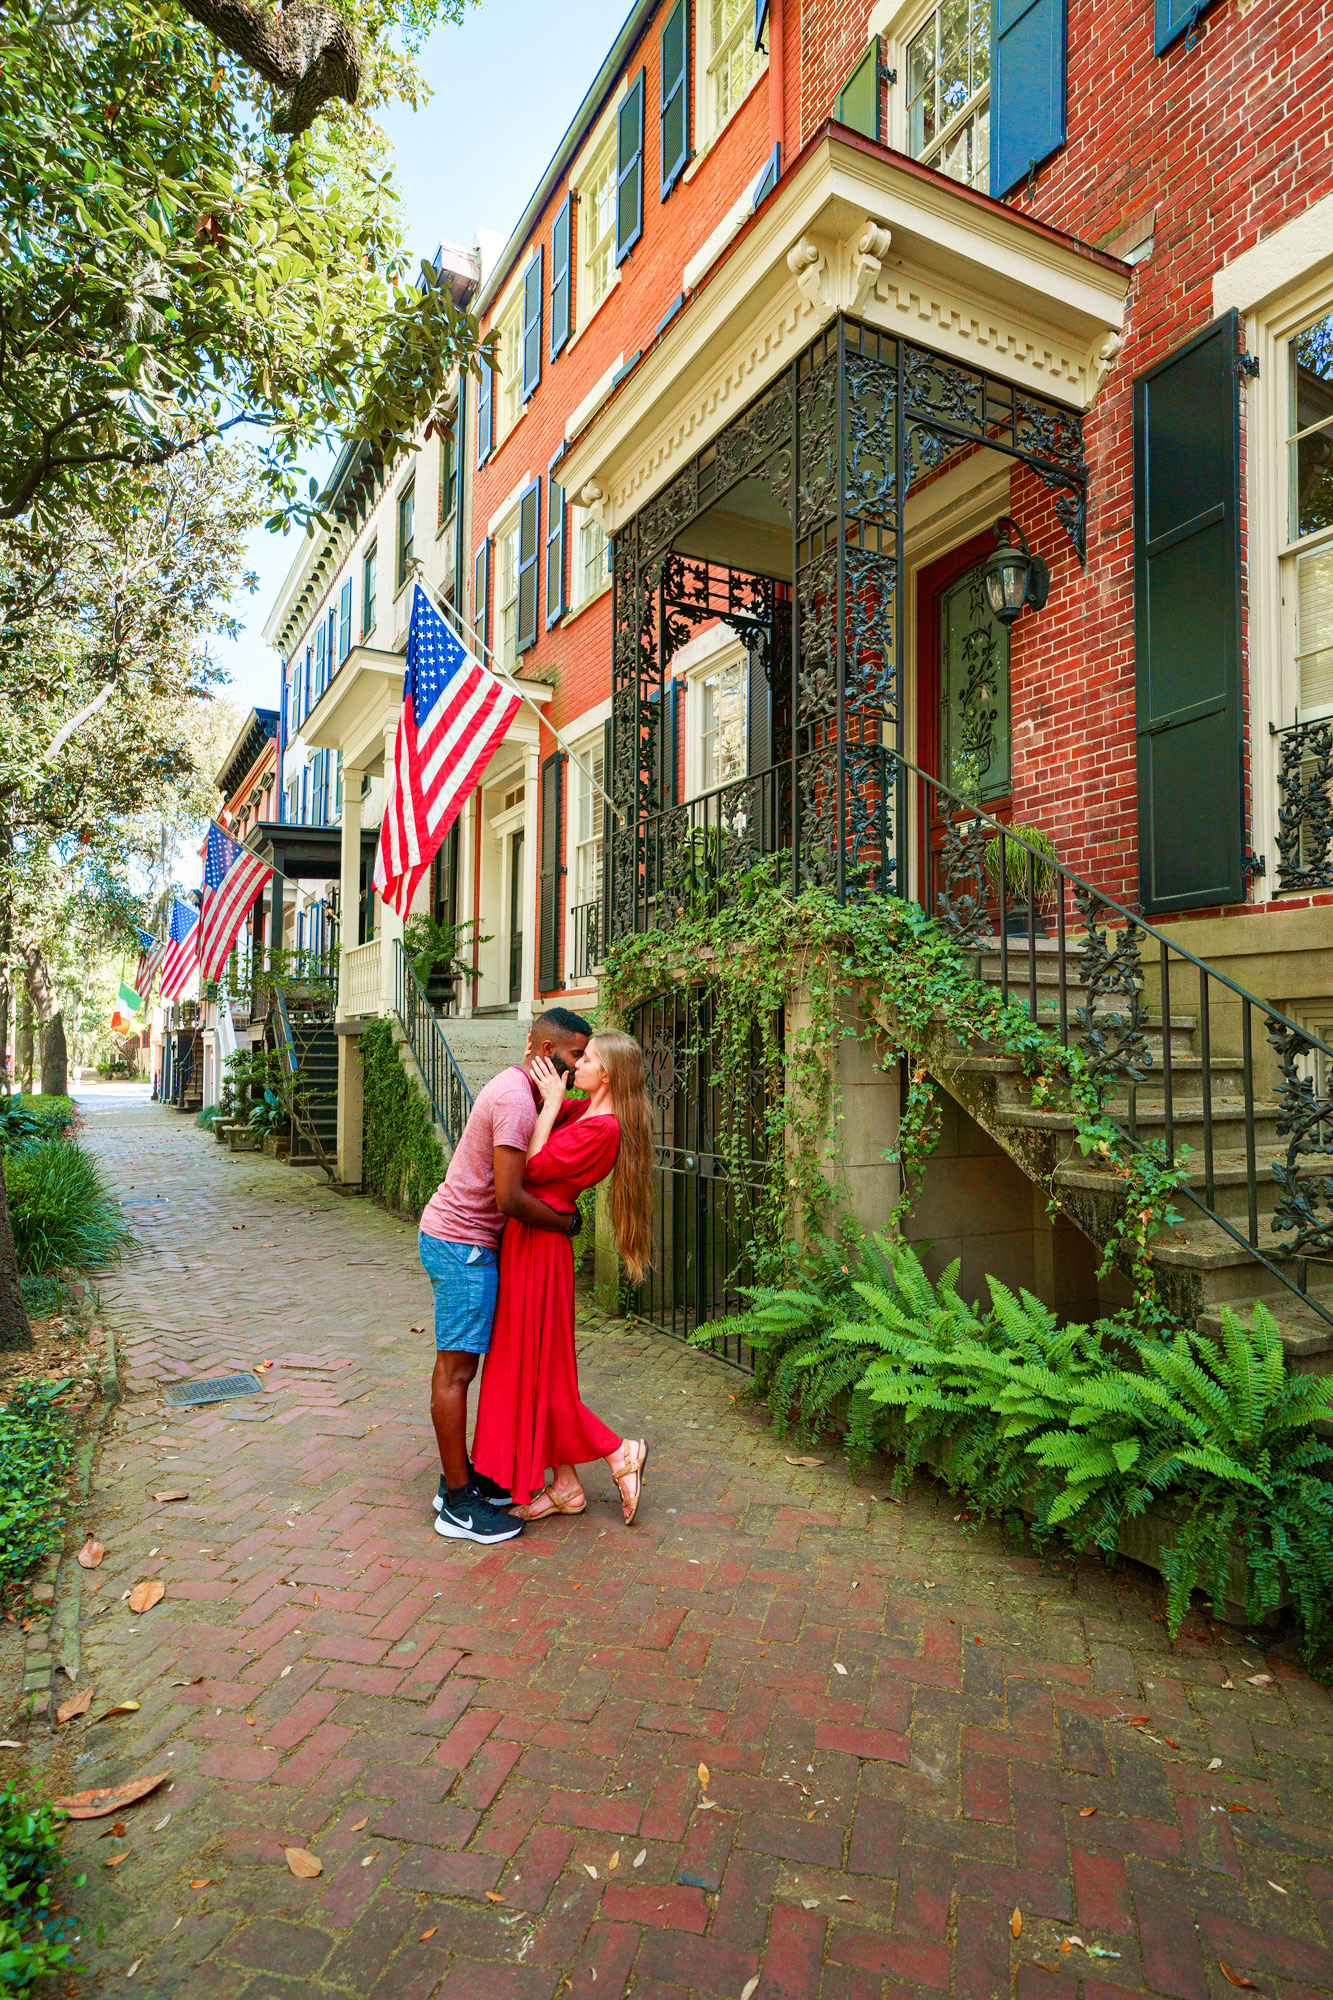 A couple standing and kissing on East Jones Street in Savannah. The street is lined with historic homes hanging American flags. It is a cobblestone sidewalk and there are trees on the other side. The house closest to the couple is brick with wrought iron stairs and overhang that is covered in vines. The woman in the couple is wearing a red dress and her long hair is down. The man in the couple is wearing a red heather shirt with denim blue shorts.